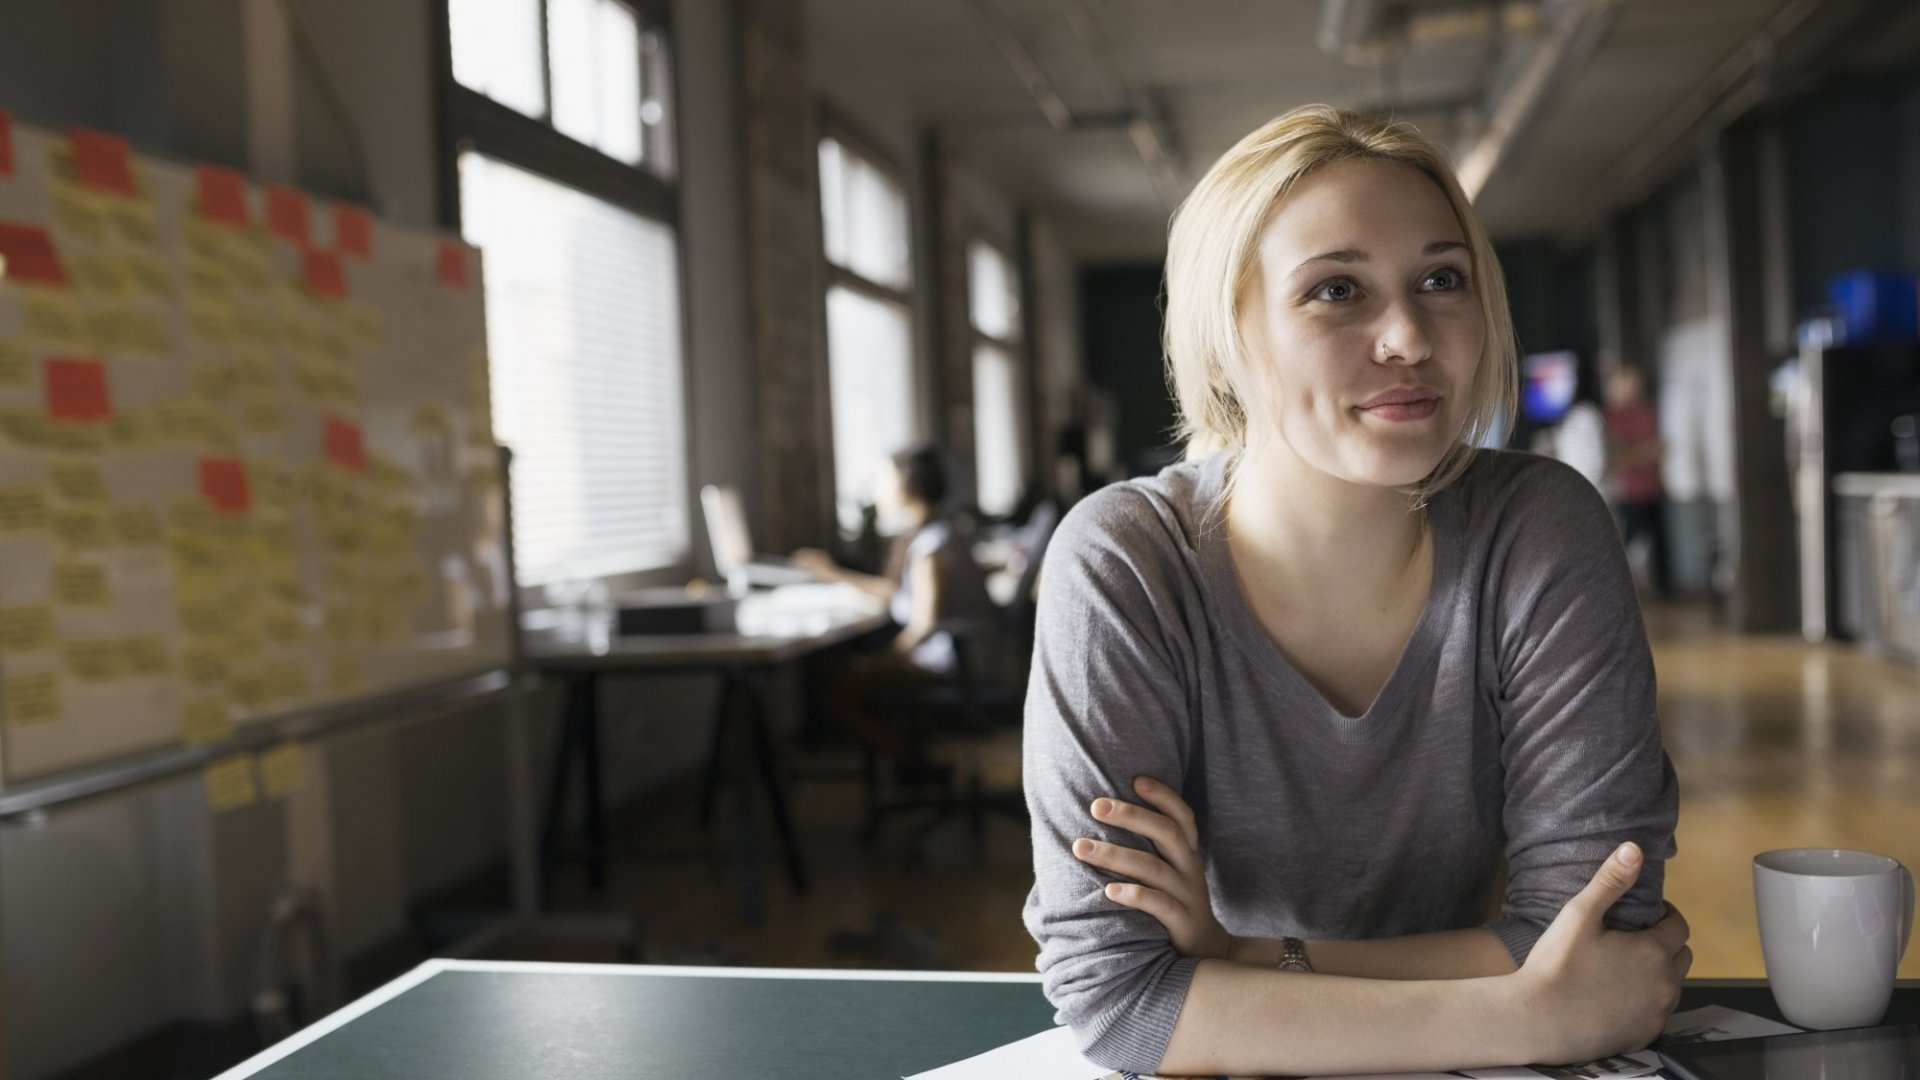 5 Tips for Transitioning From Employee to Entrepreneur